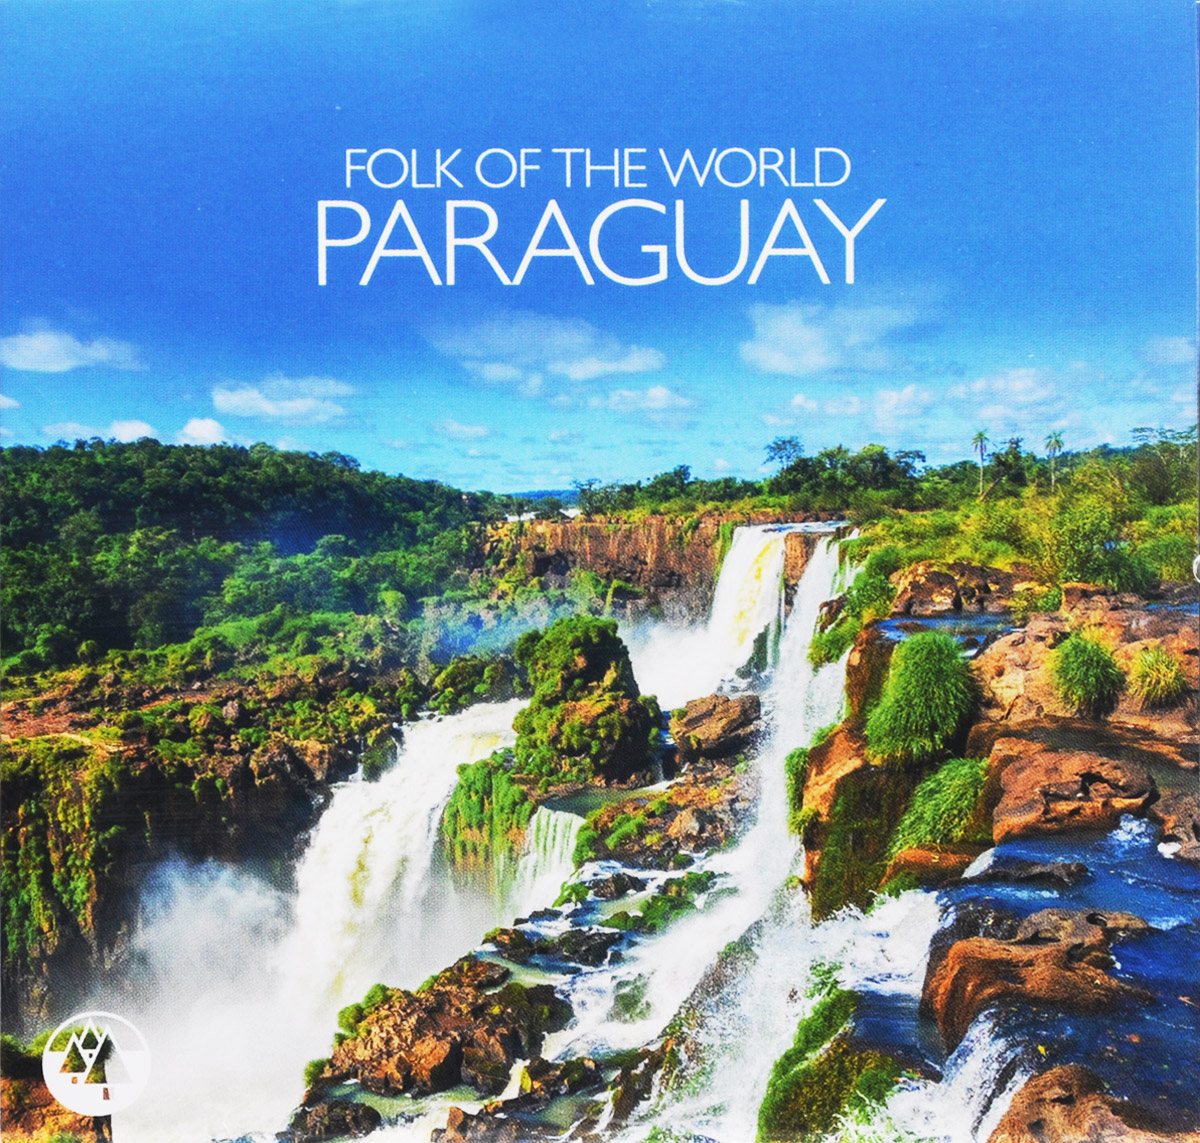 Folk Of The World. Paraguay folk of the world paraguay